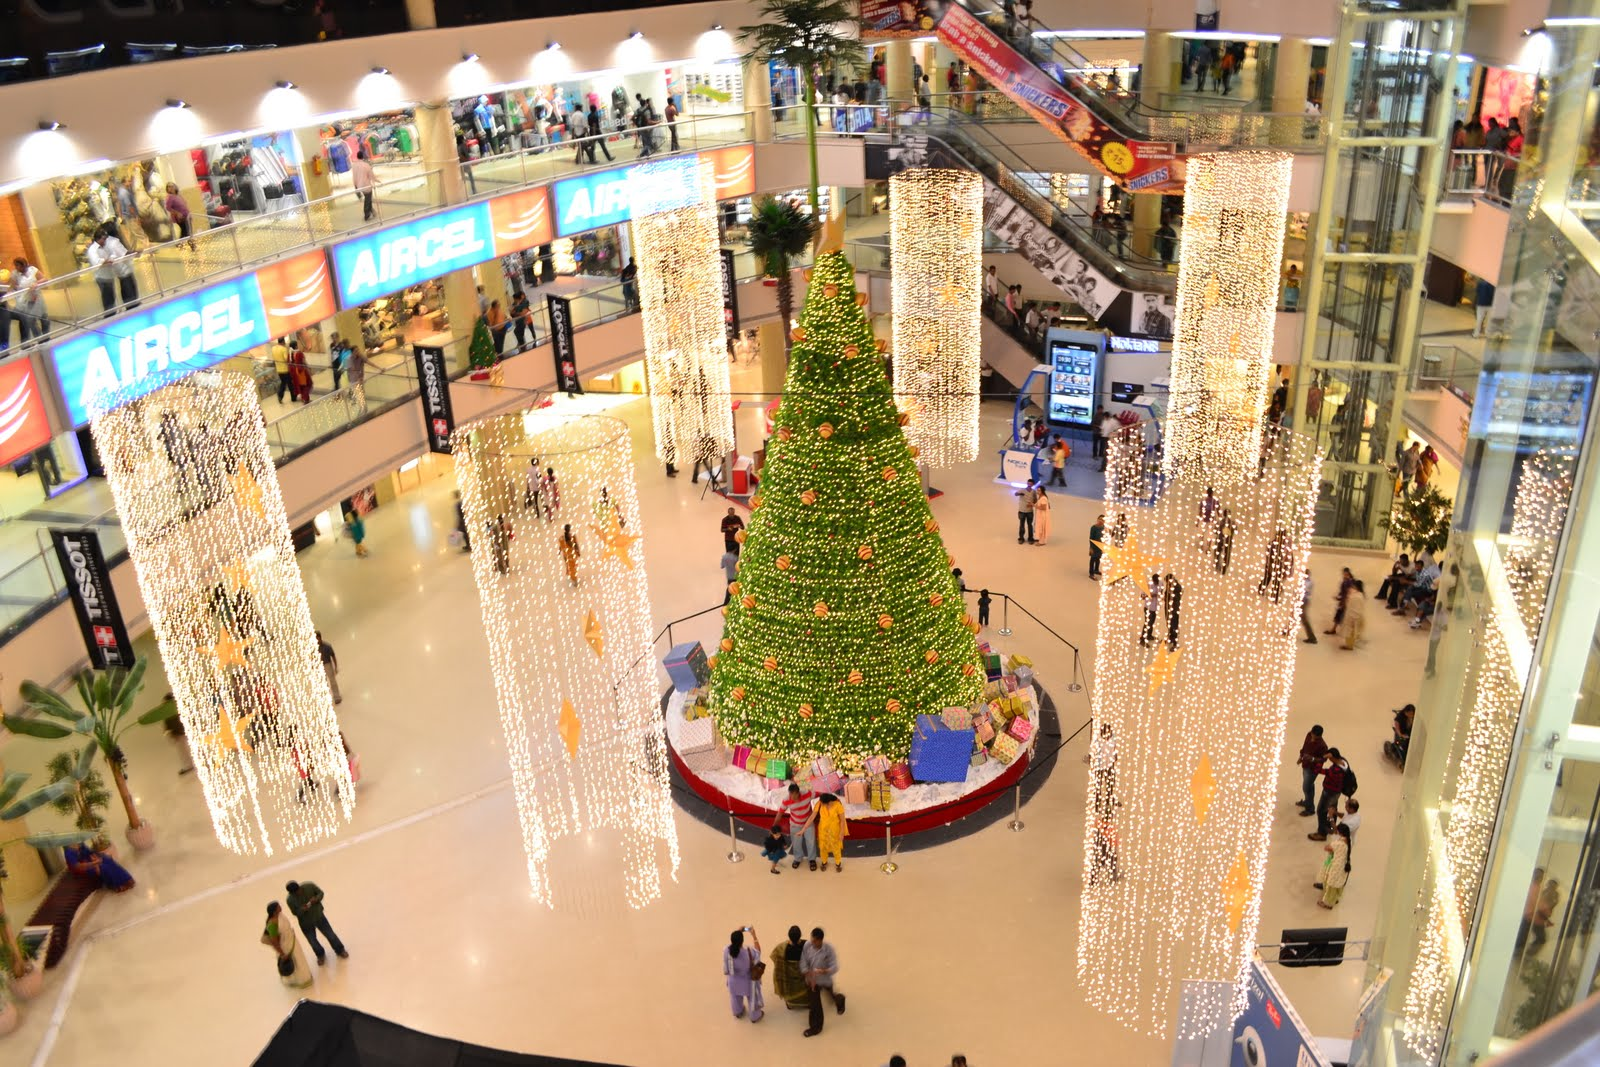 Top 10 shopping malls in chennai travel guide india for Top ten boutiques